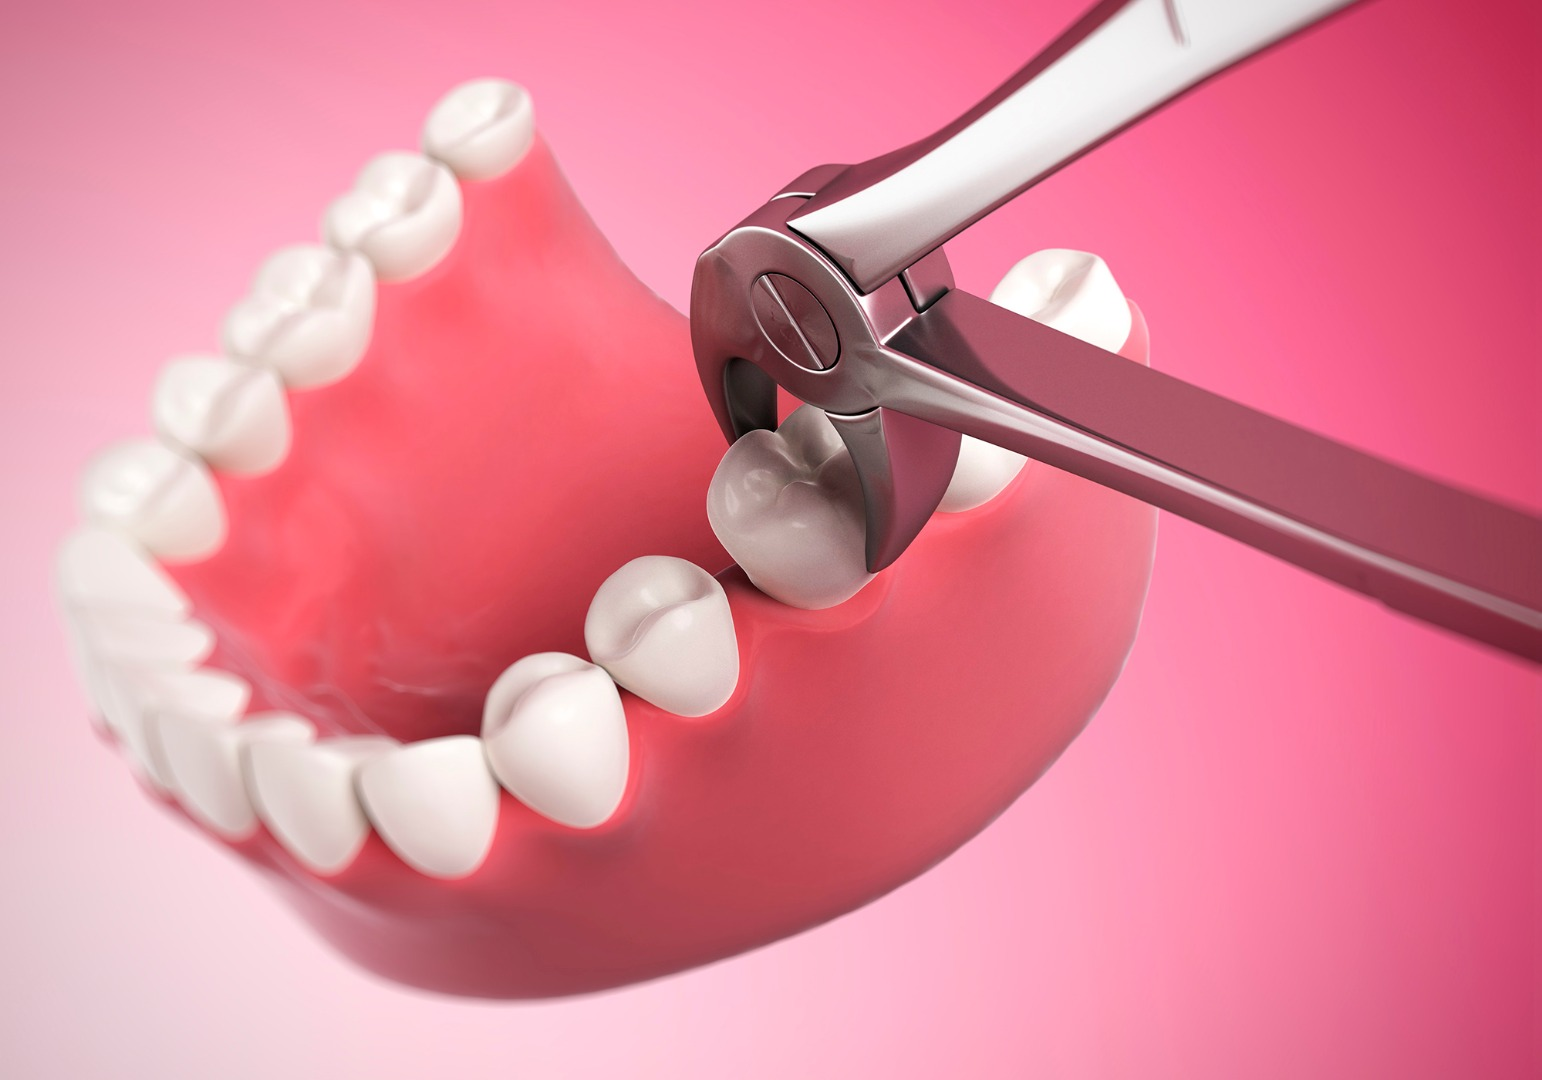 Simple tooth extraction 1